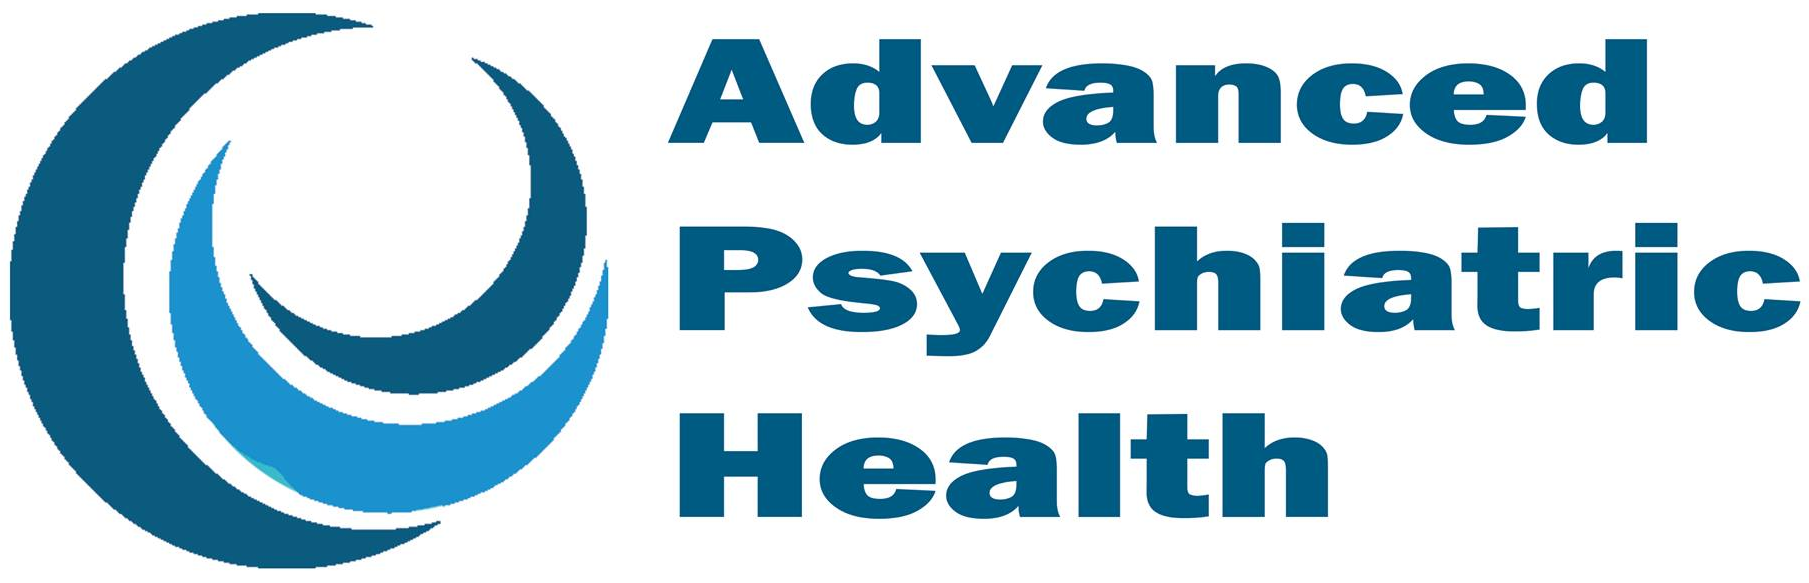 Advanced Psychiatric Health Logo